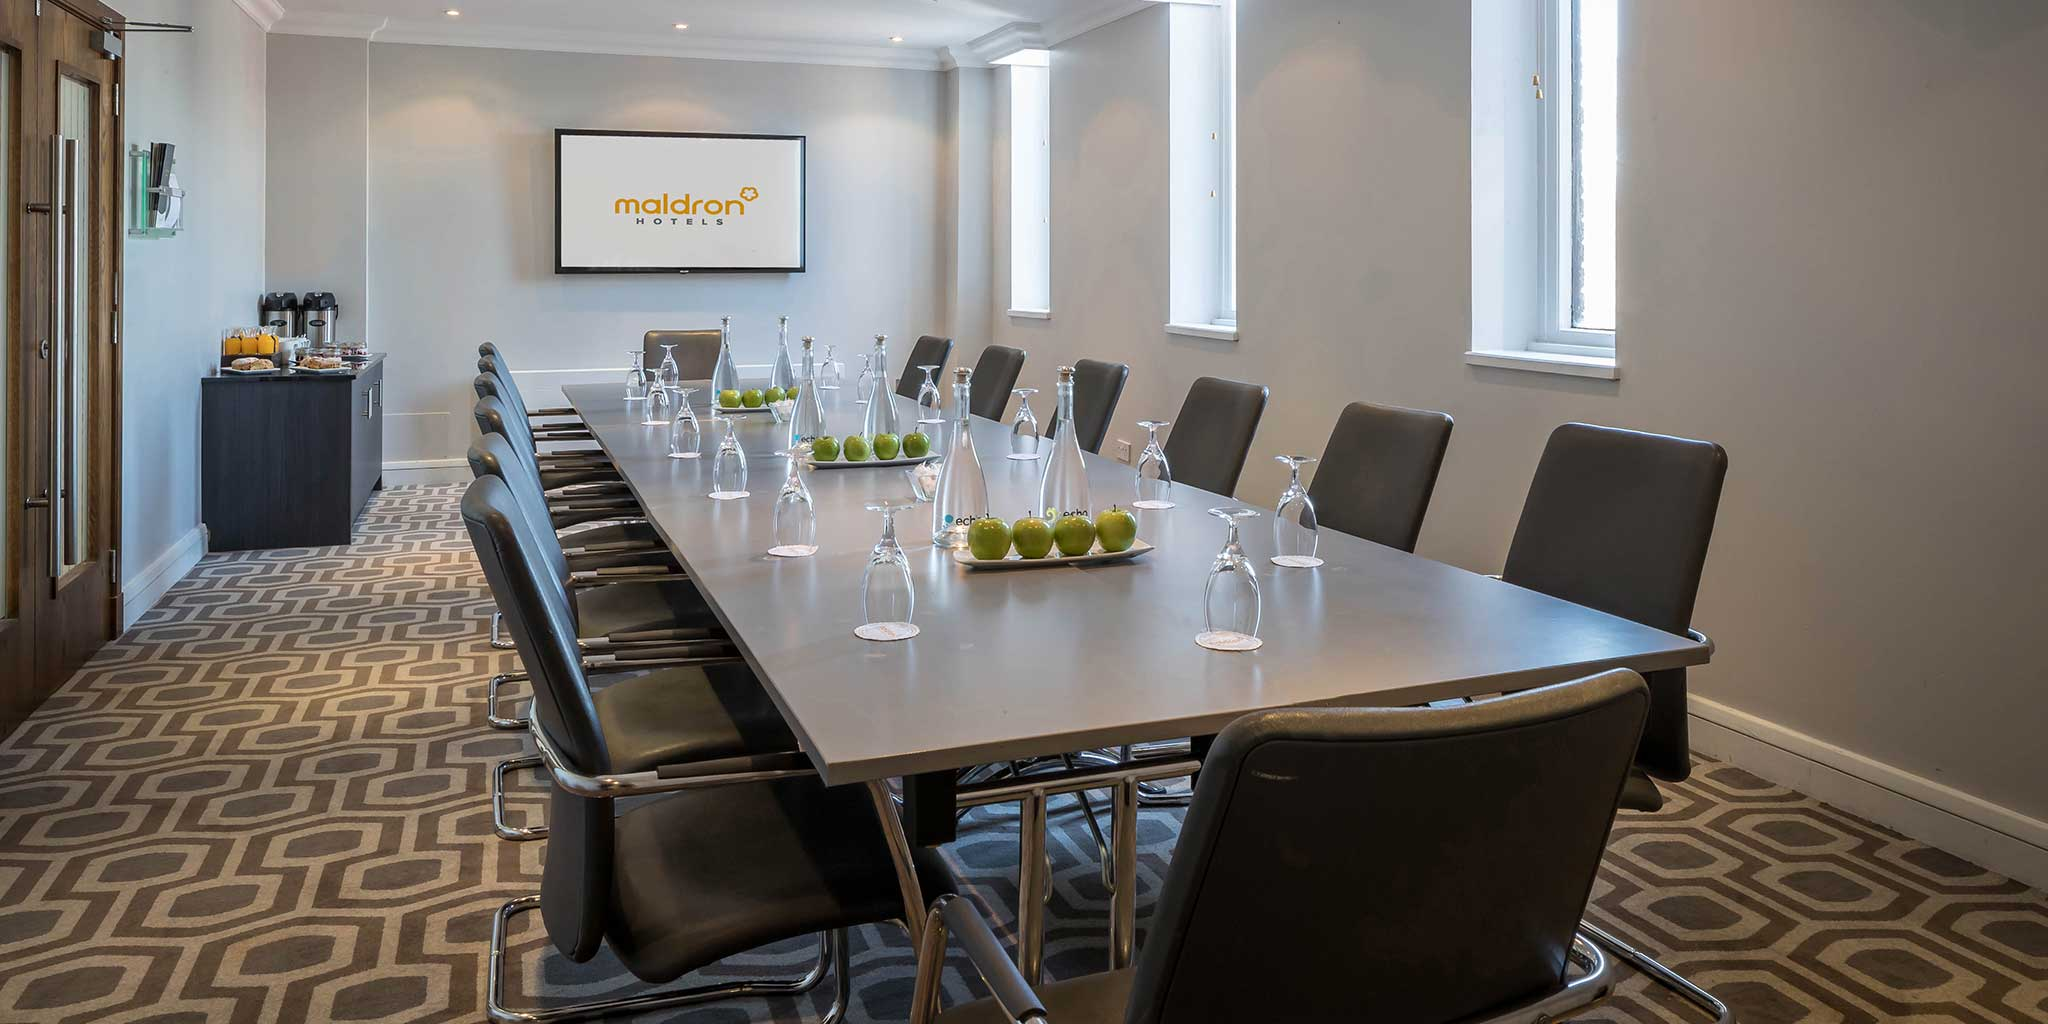 Maldron-Hotel-Dublin-Airport-747-Boardroom-meeting-room